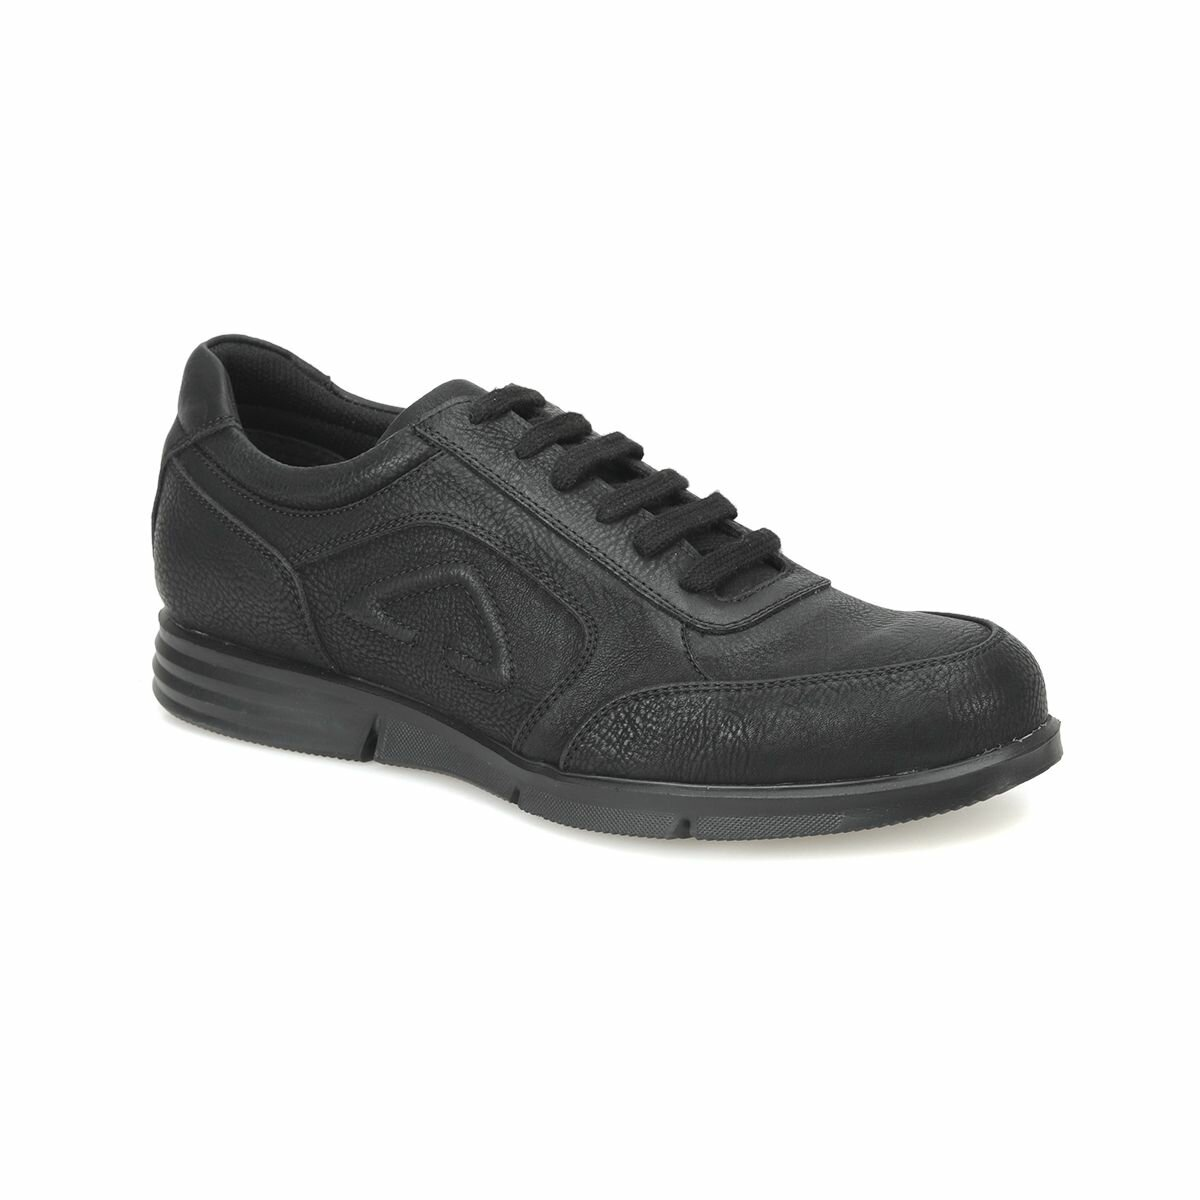 FLO 014-3 Black Male Shoes Oxide